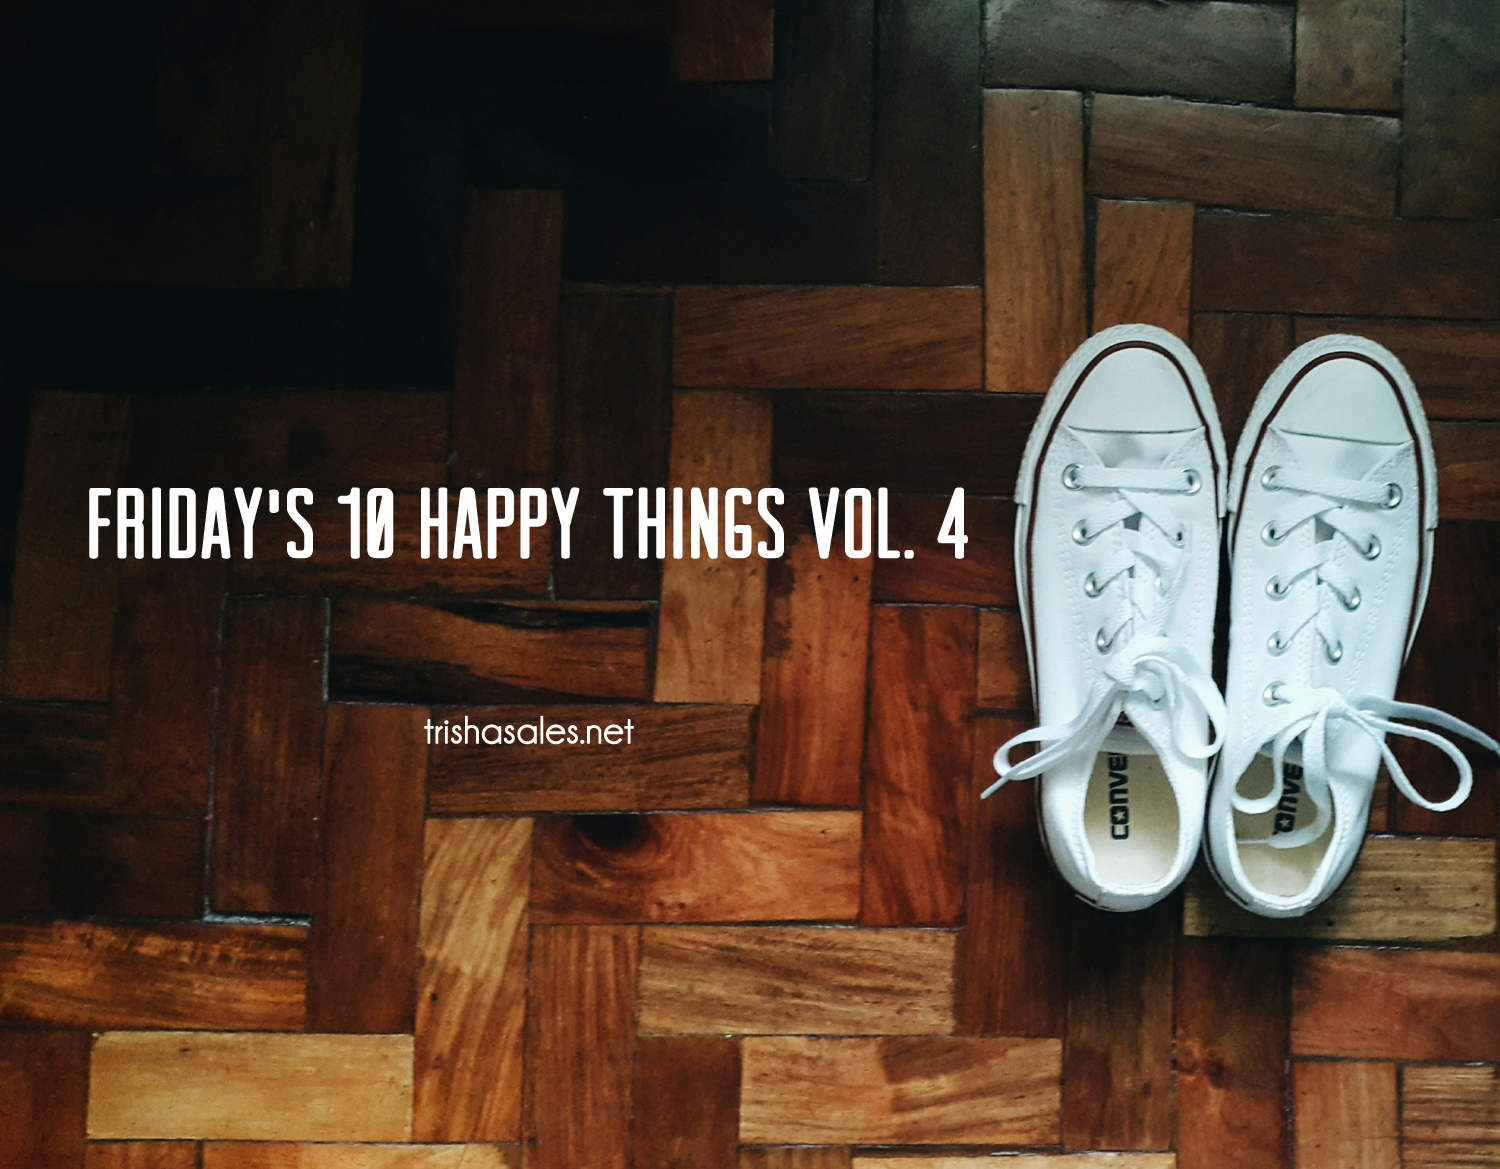 Friday's 10 Happy Things Vol. 4